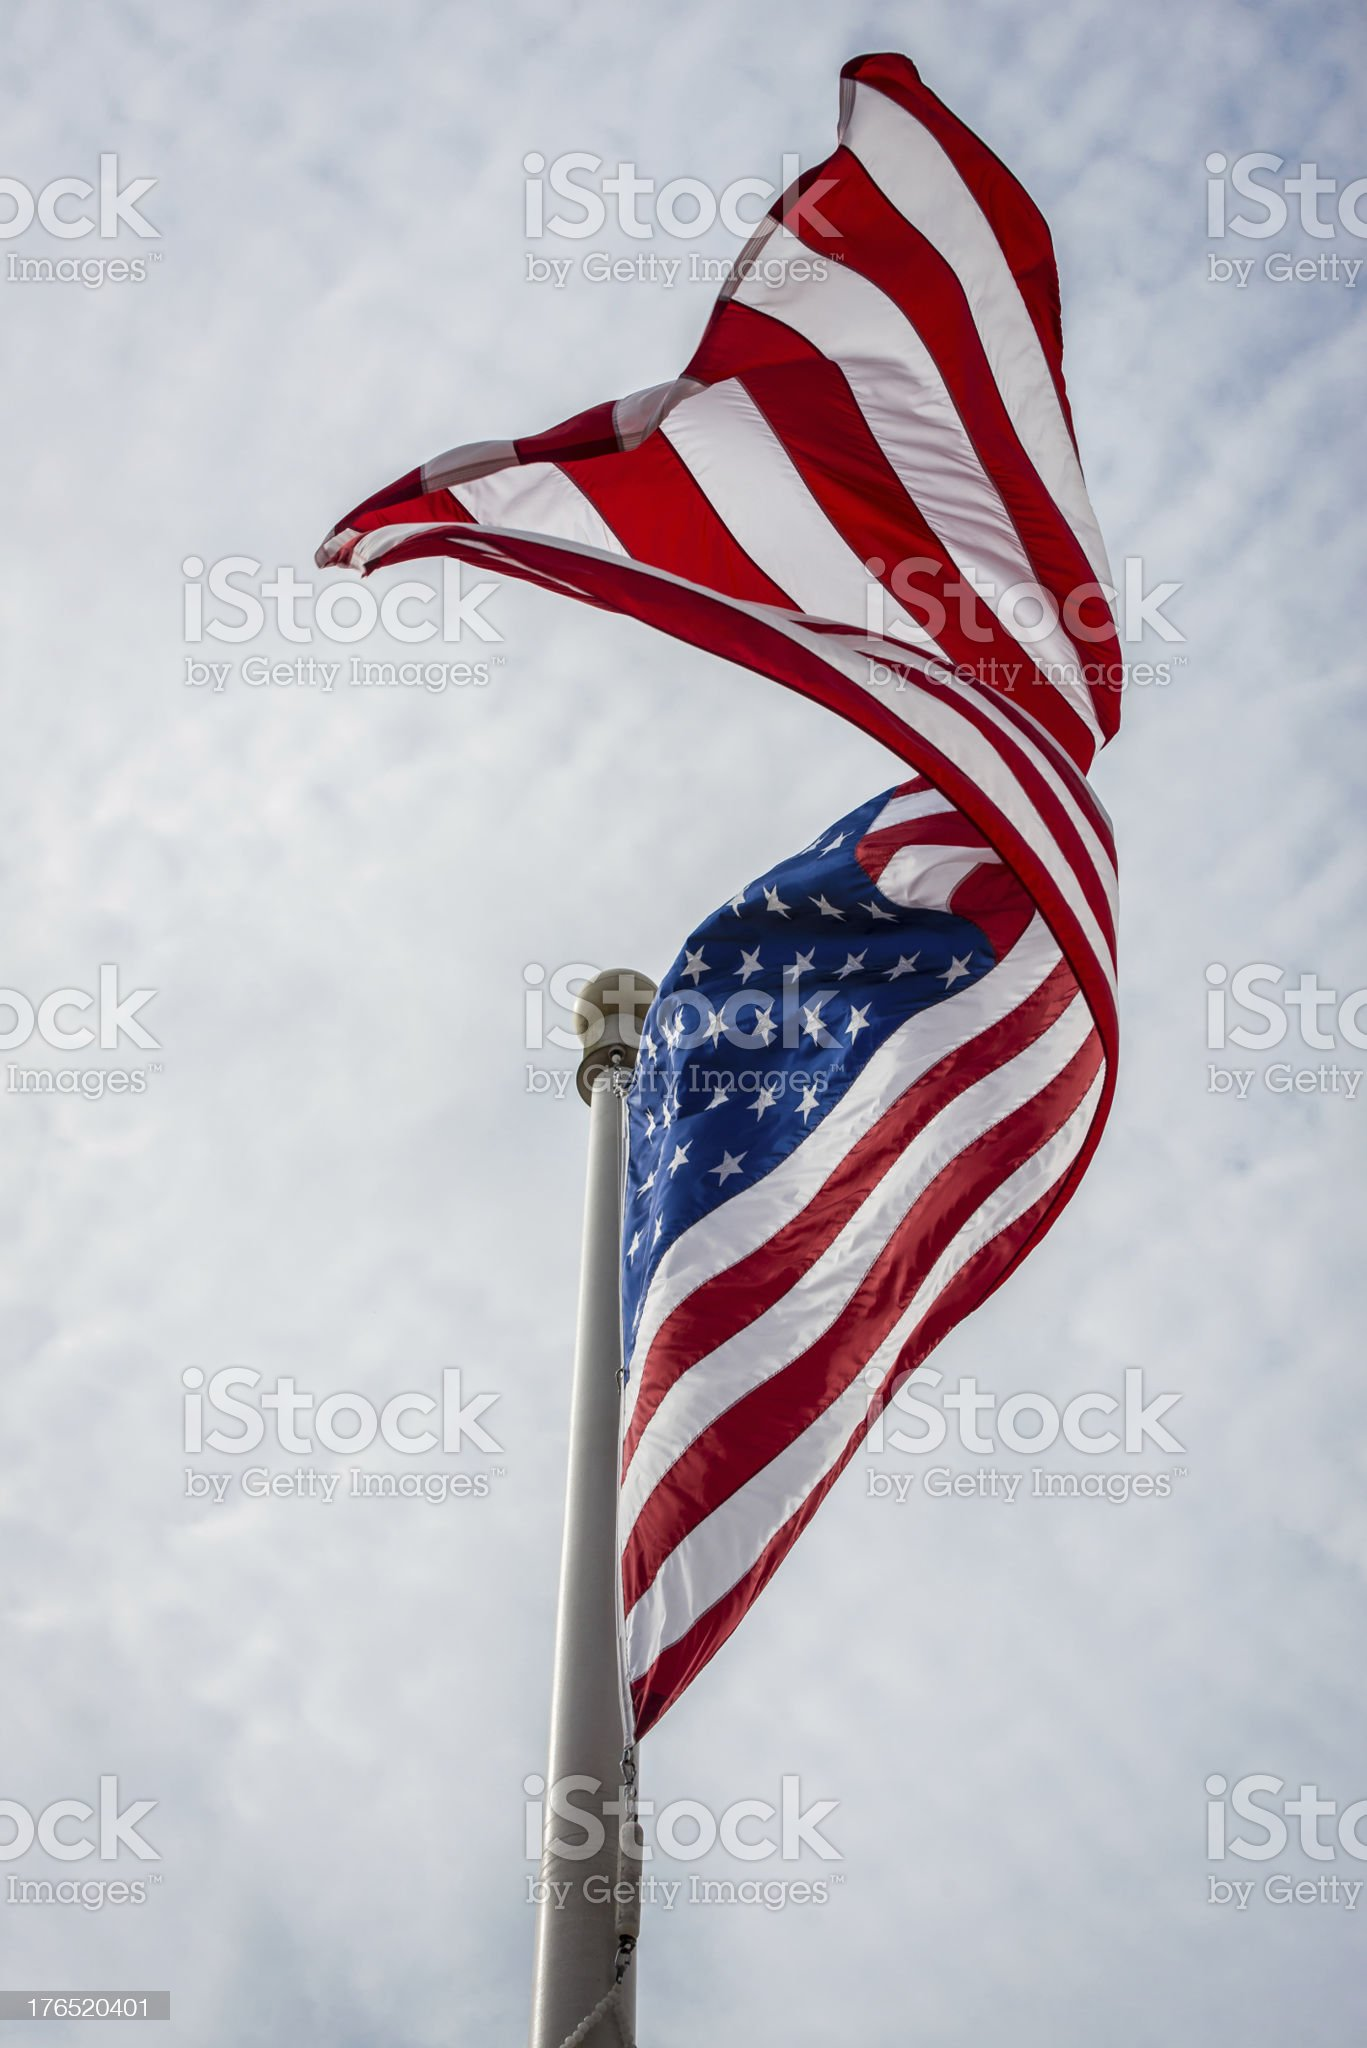 Waving American Flag on a Pole with Cloudscape Background royalty-free stock photo